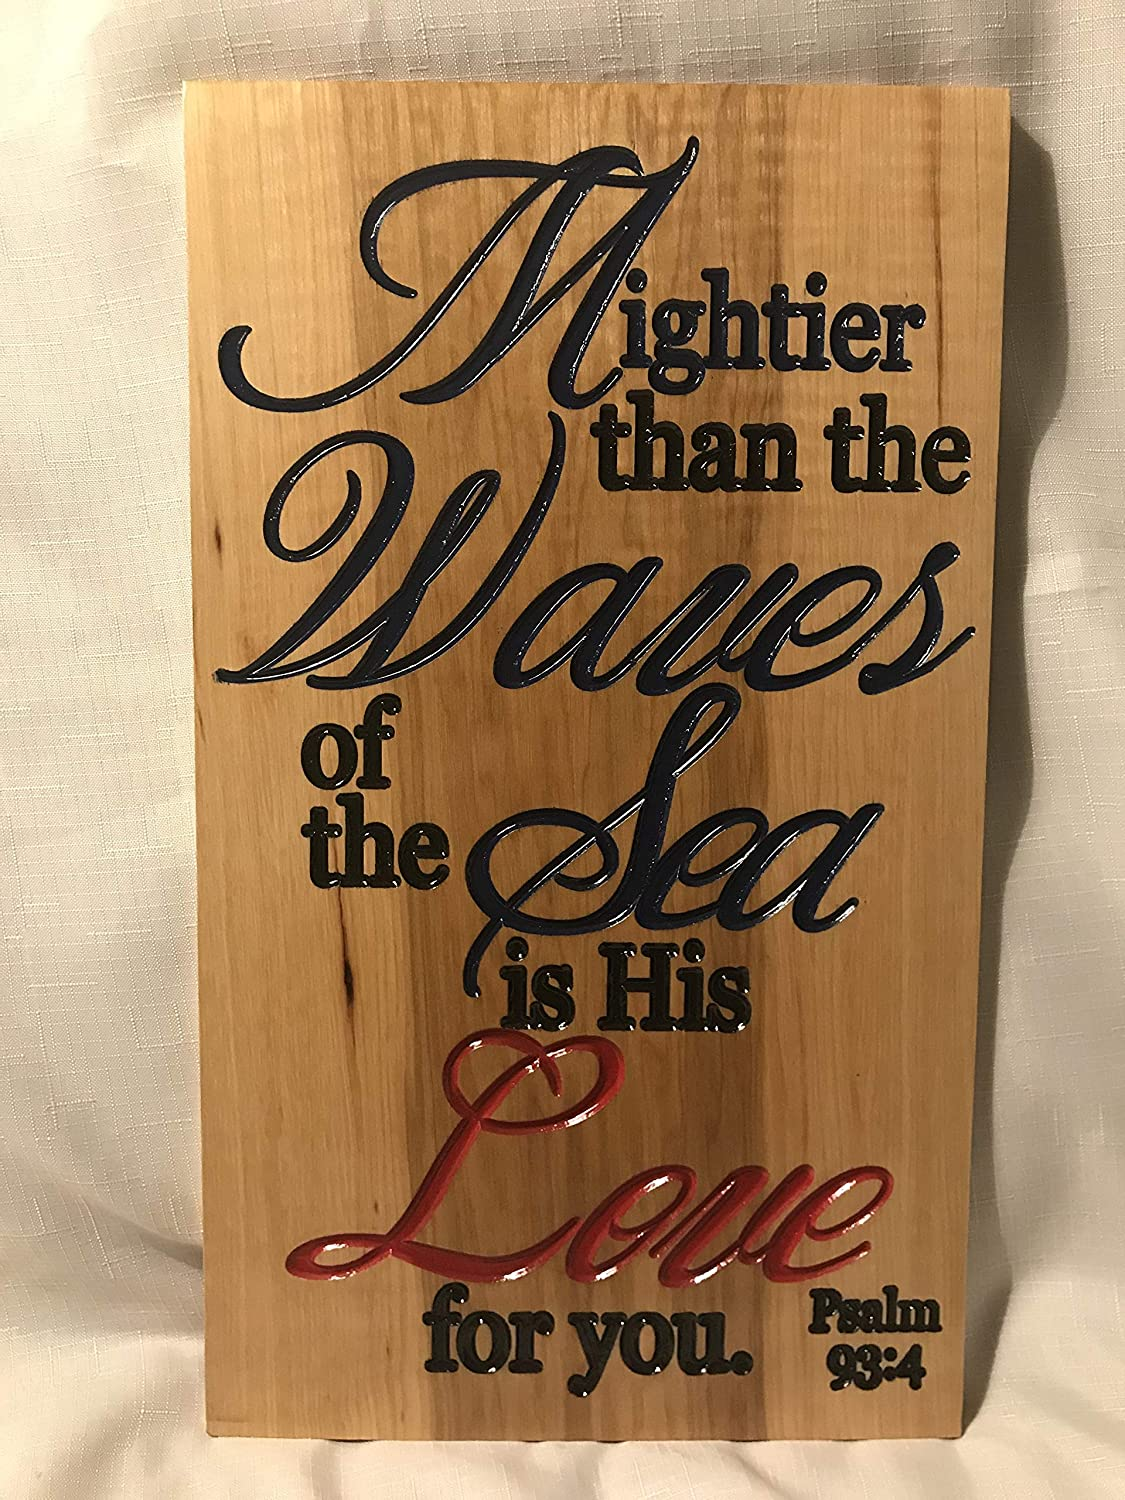 Amazon com razz mightier than the waves of the sea is his love for you psalm 934 9 7 8 x 17 x 3 8 thick machine carved hand painted hickory wood